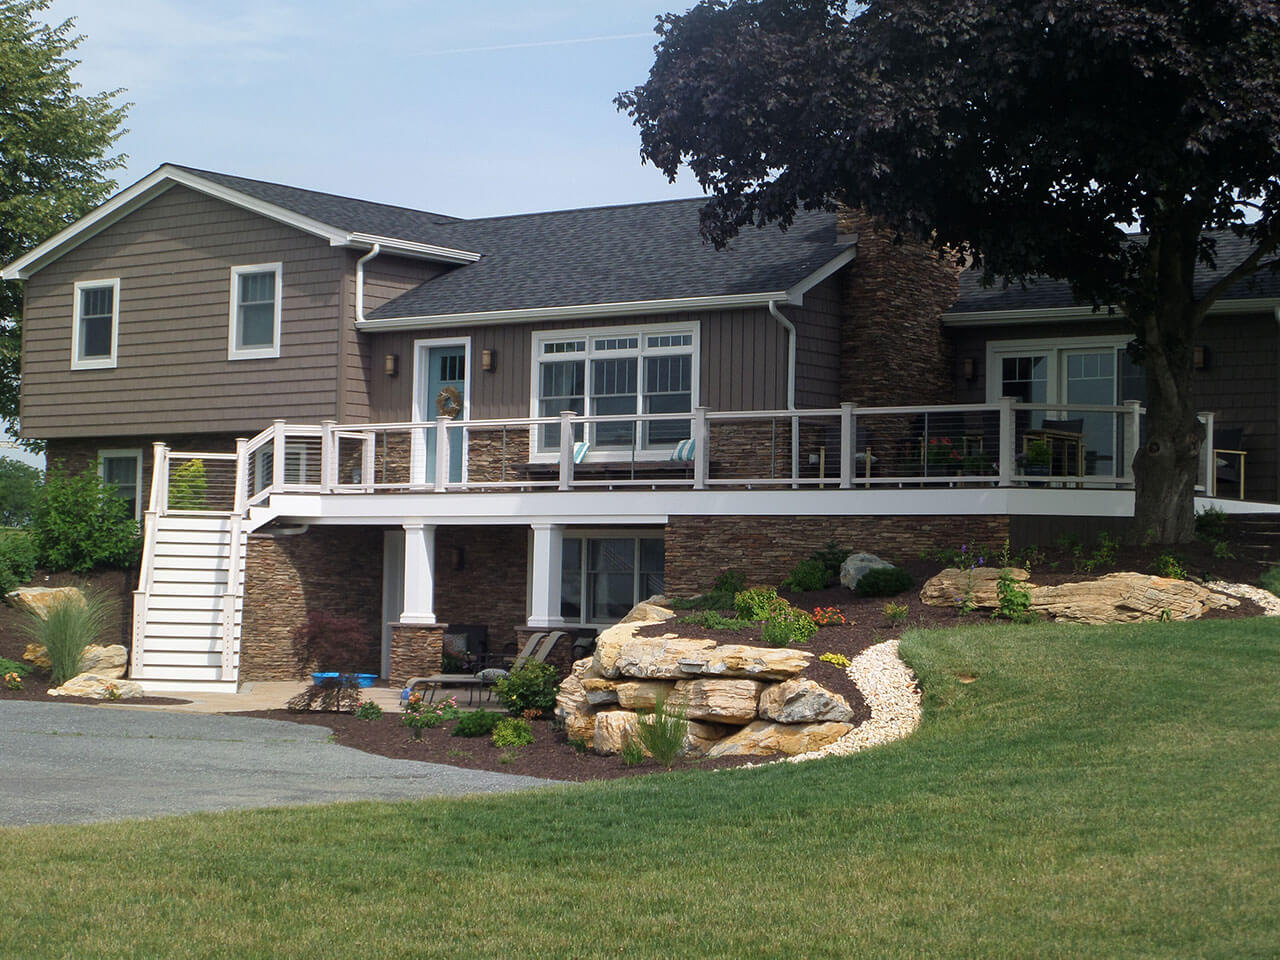 a new deck addition by smucker brothers construction